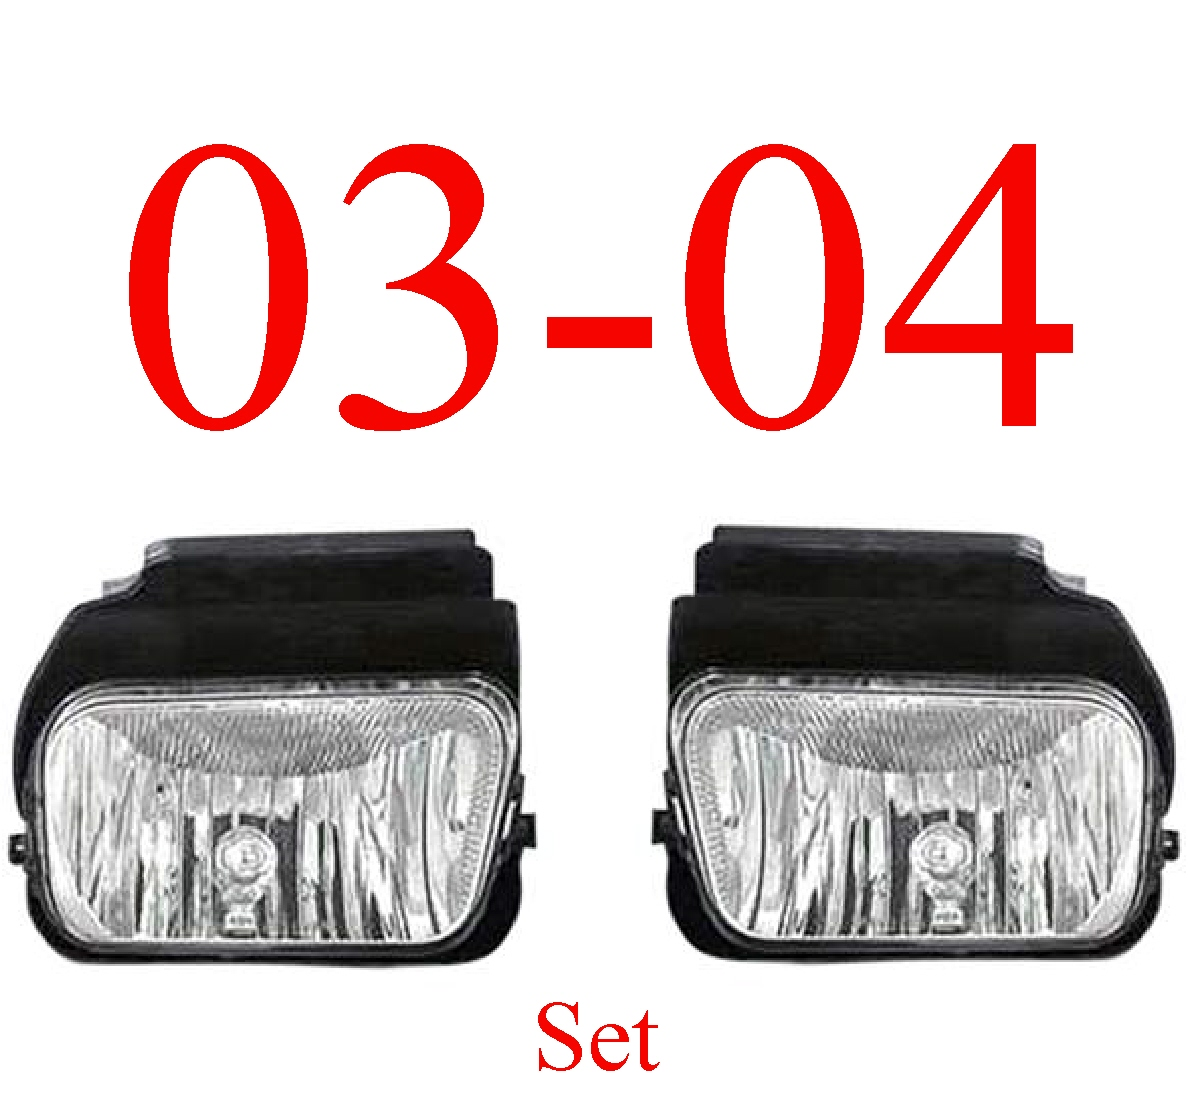 03-04 Chevy Fog Light Set, Silverado, Avalanche